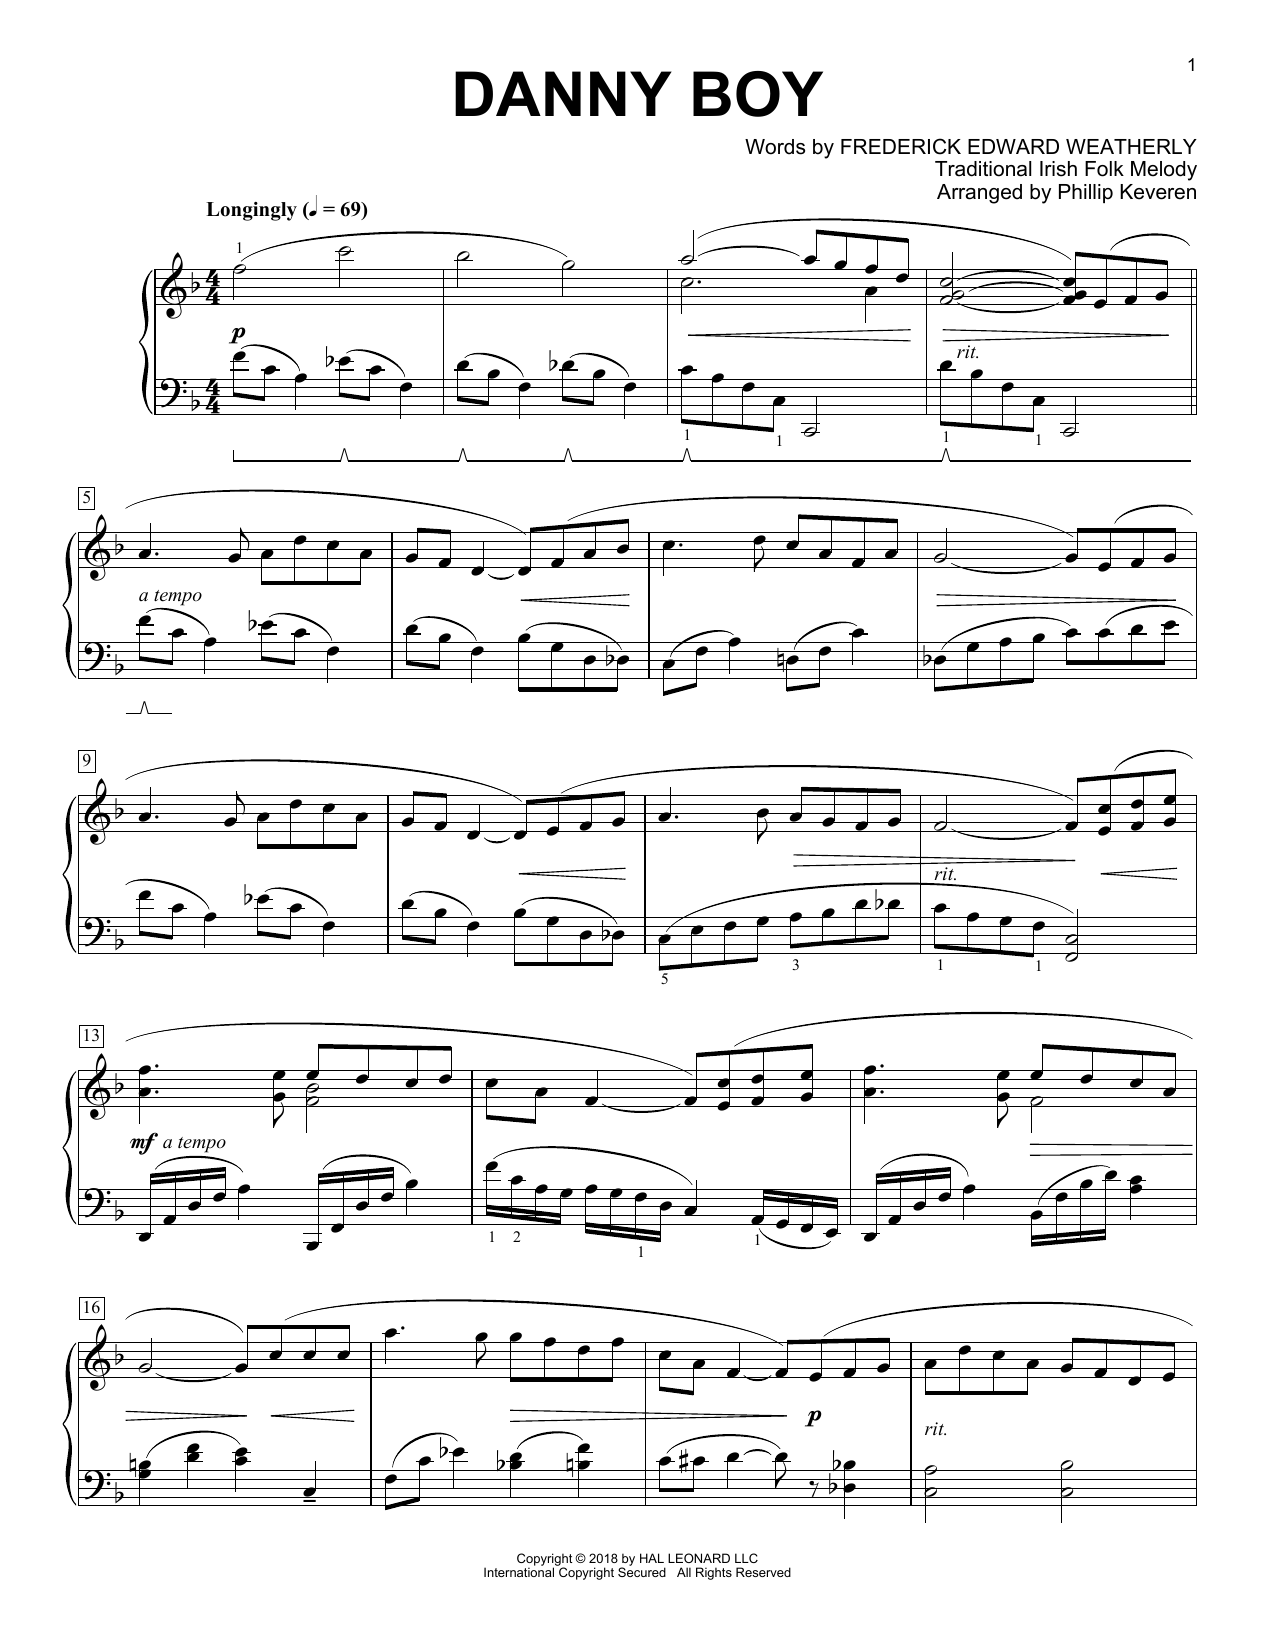 Frederick Edward Weatherly Danny Boy [Classical version] (arr. Phillip Keveren) sheet music notes and chords. Download Printable PDF.